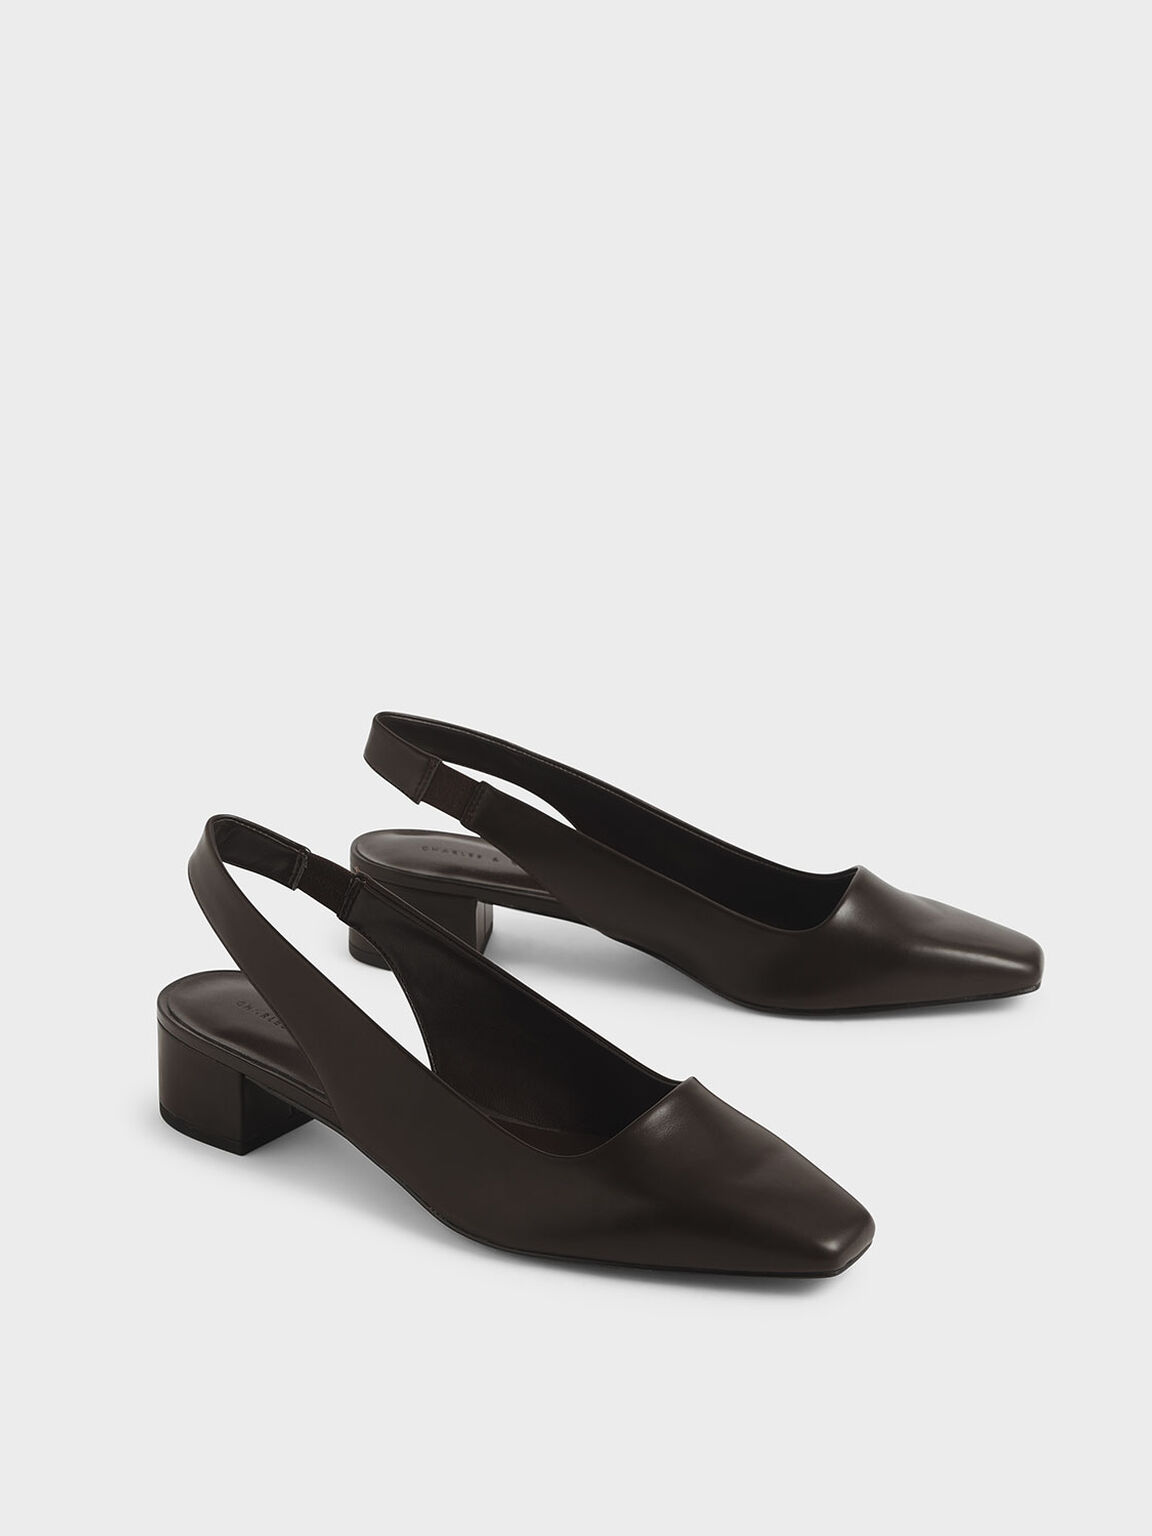 Square Toe Block Heel Slingback Pumps, Dark Brown, hi-res